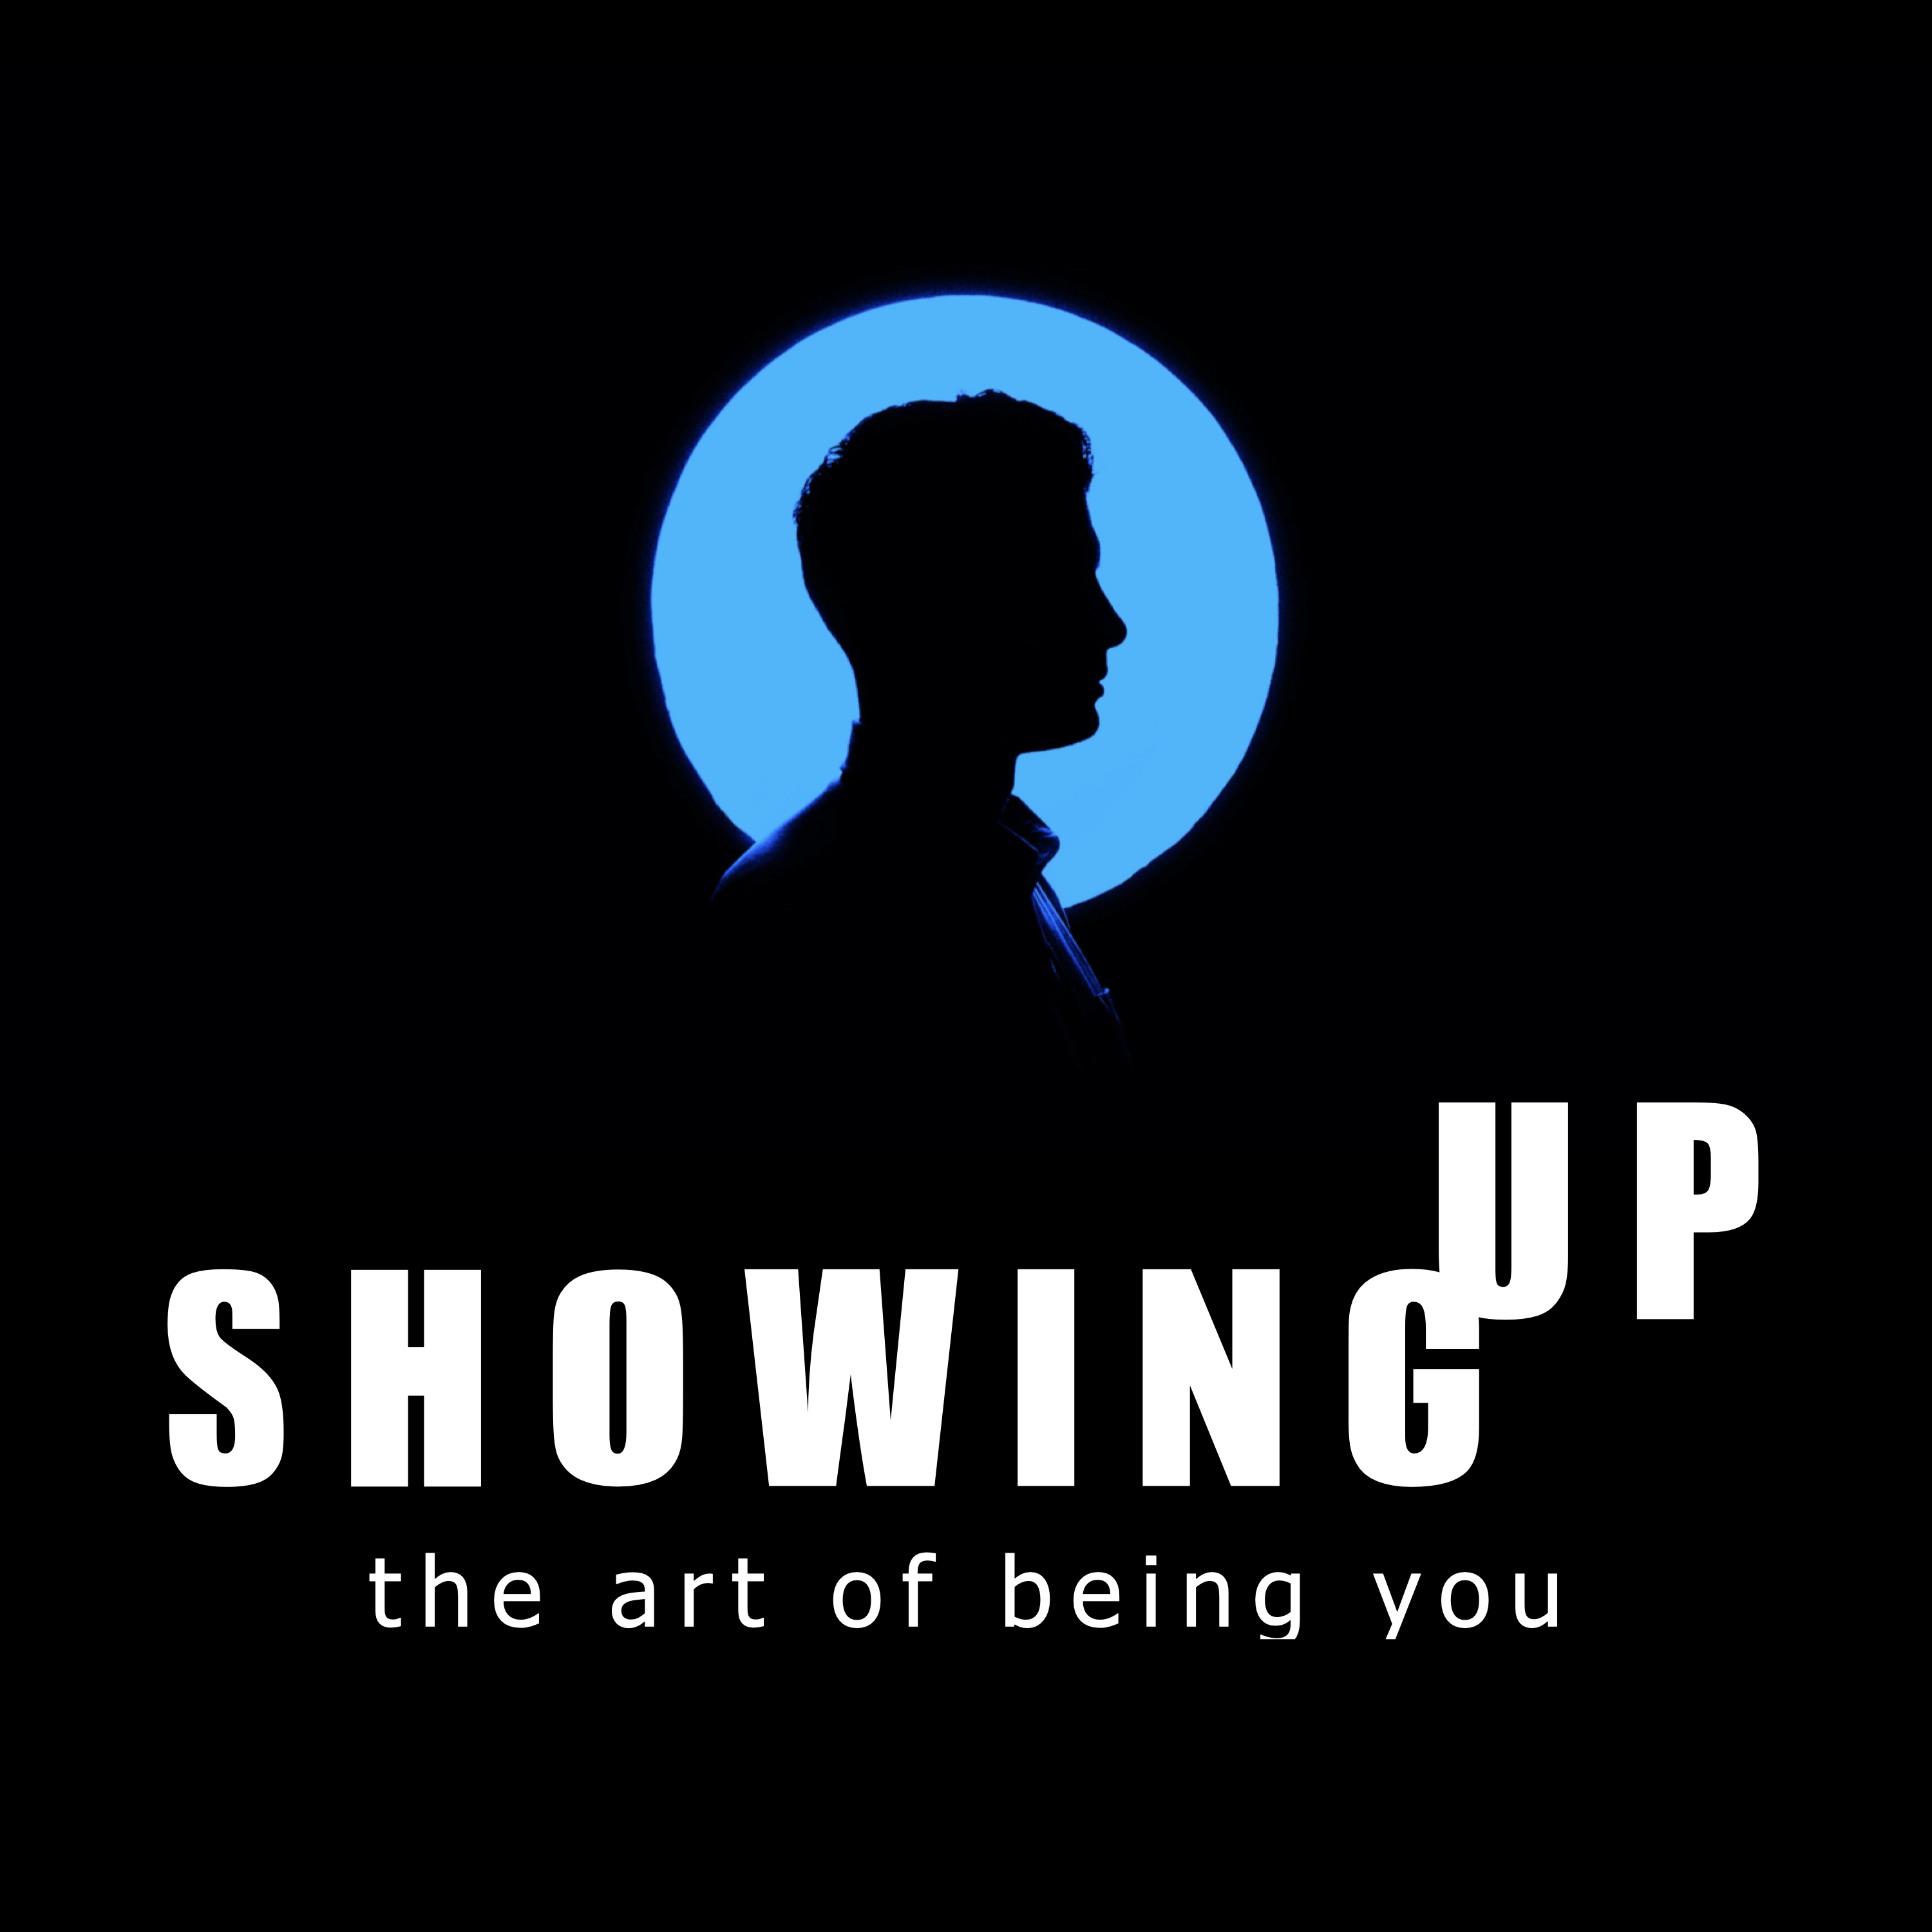 Ep 25: The Art of Relationships show art